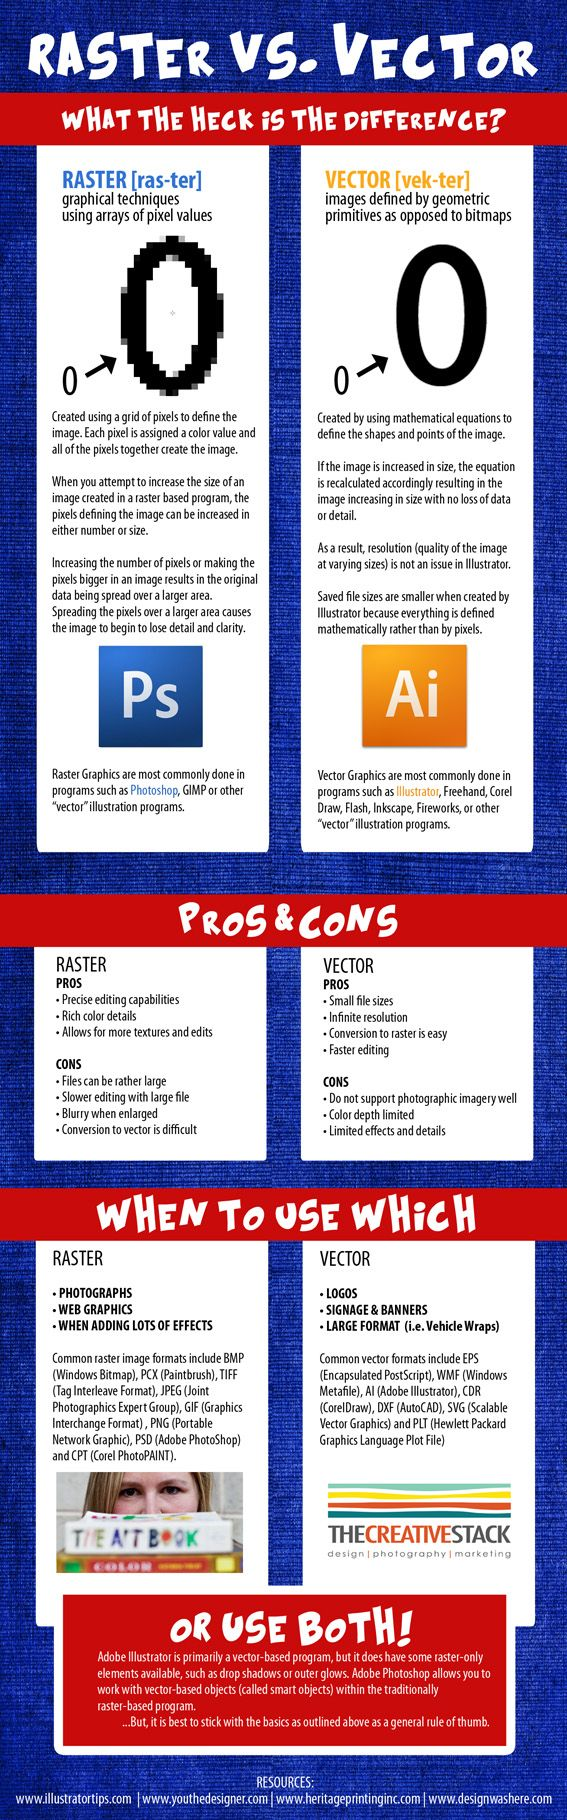 Raster Vs. Vector #infographic #graphicdesign